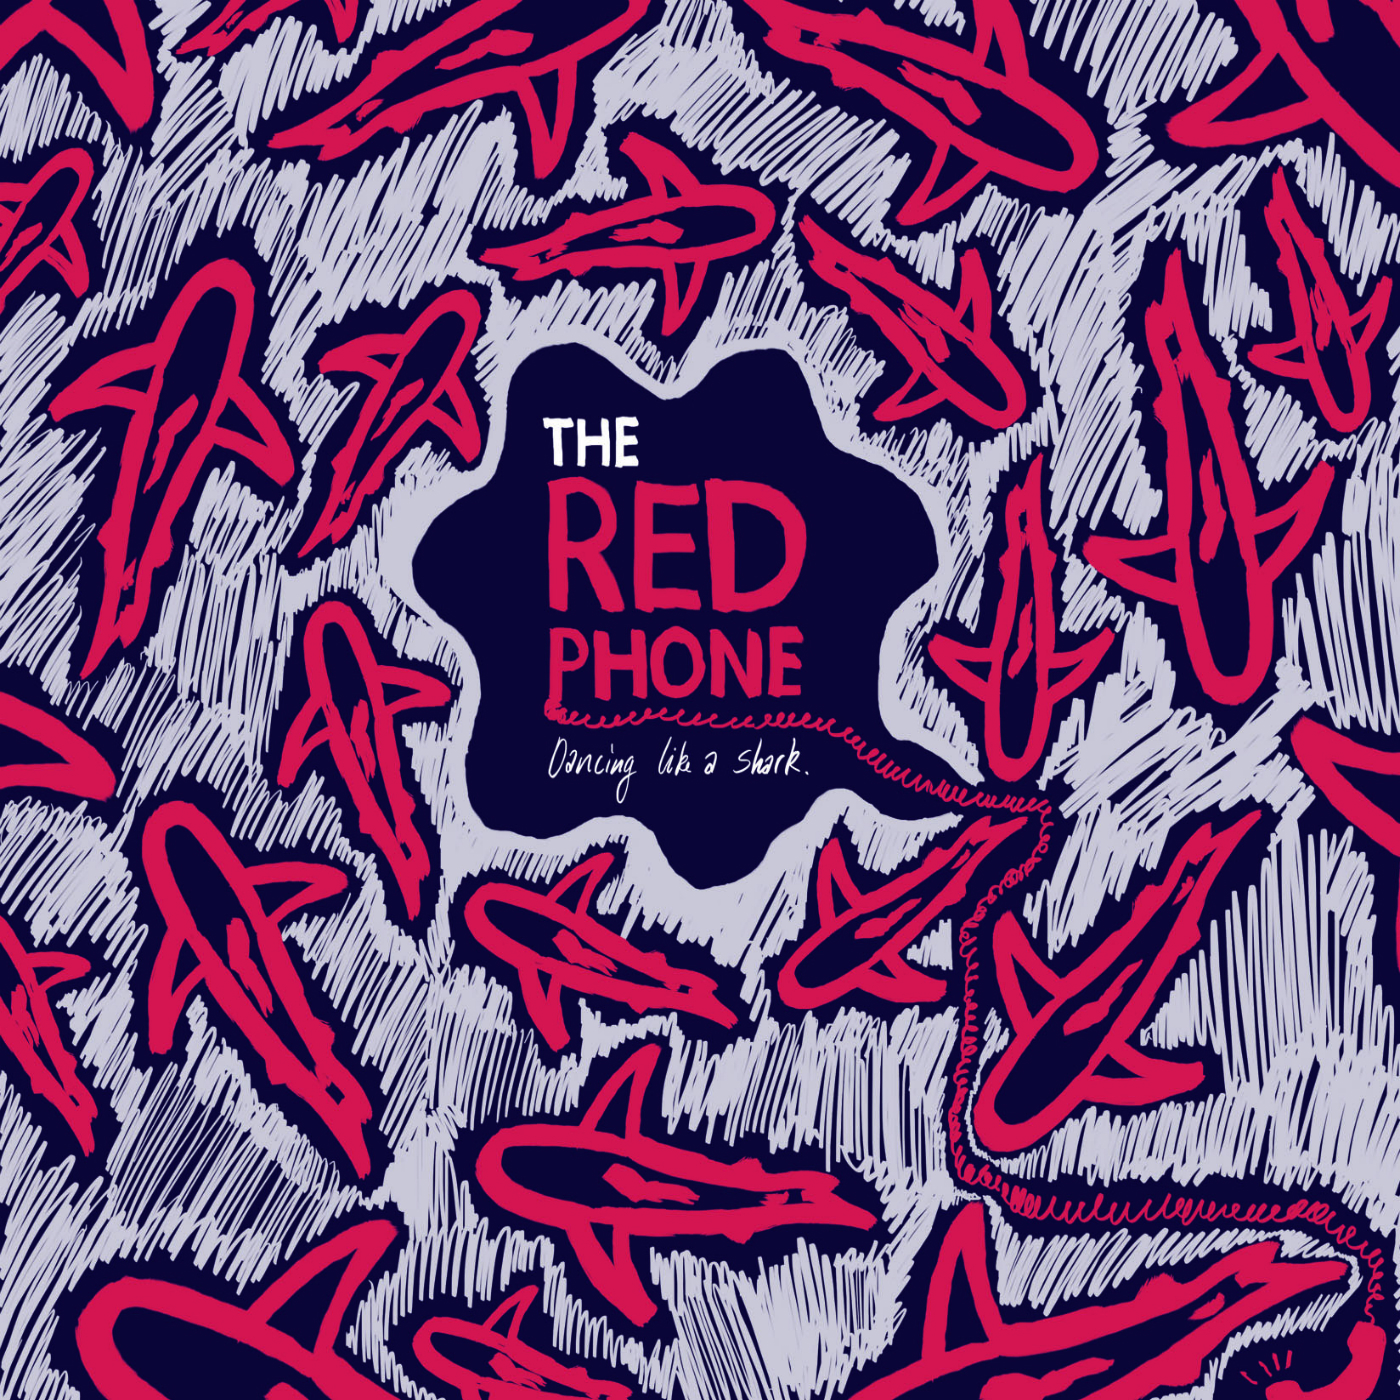 THE_RED_PHONE_CD_COVER_CDBABY